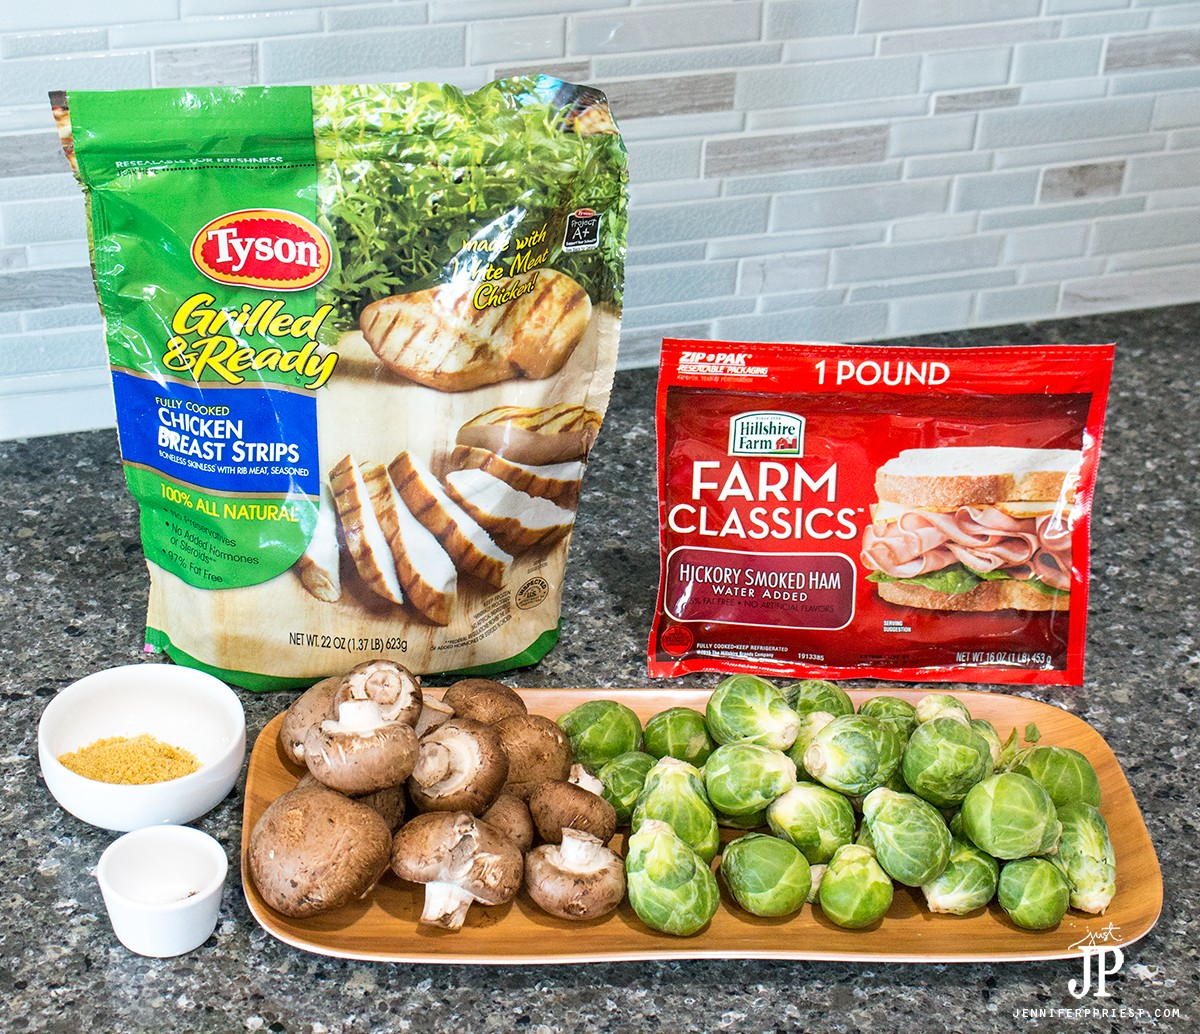 30 minute meal - easy Mushroom chicken recipe with roasted brussels sprouts - the kids will even love this!